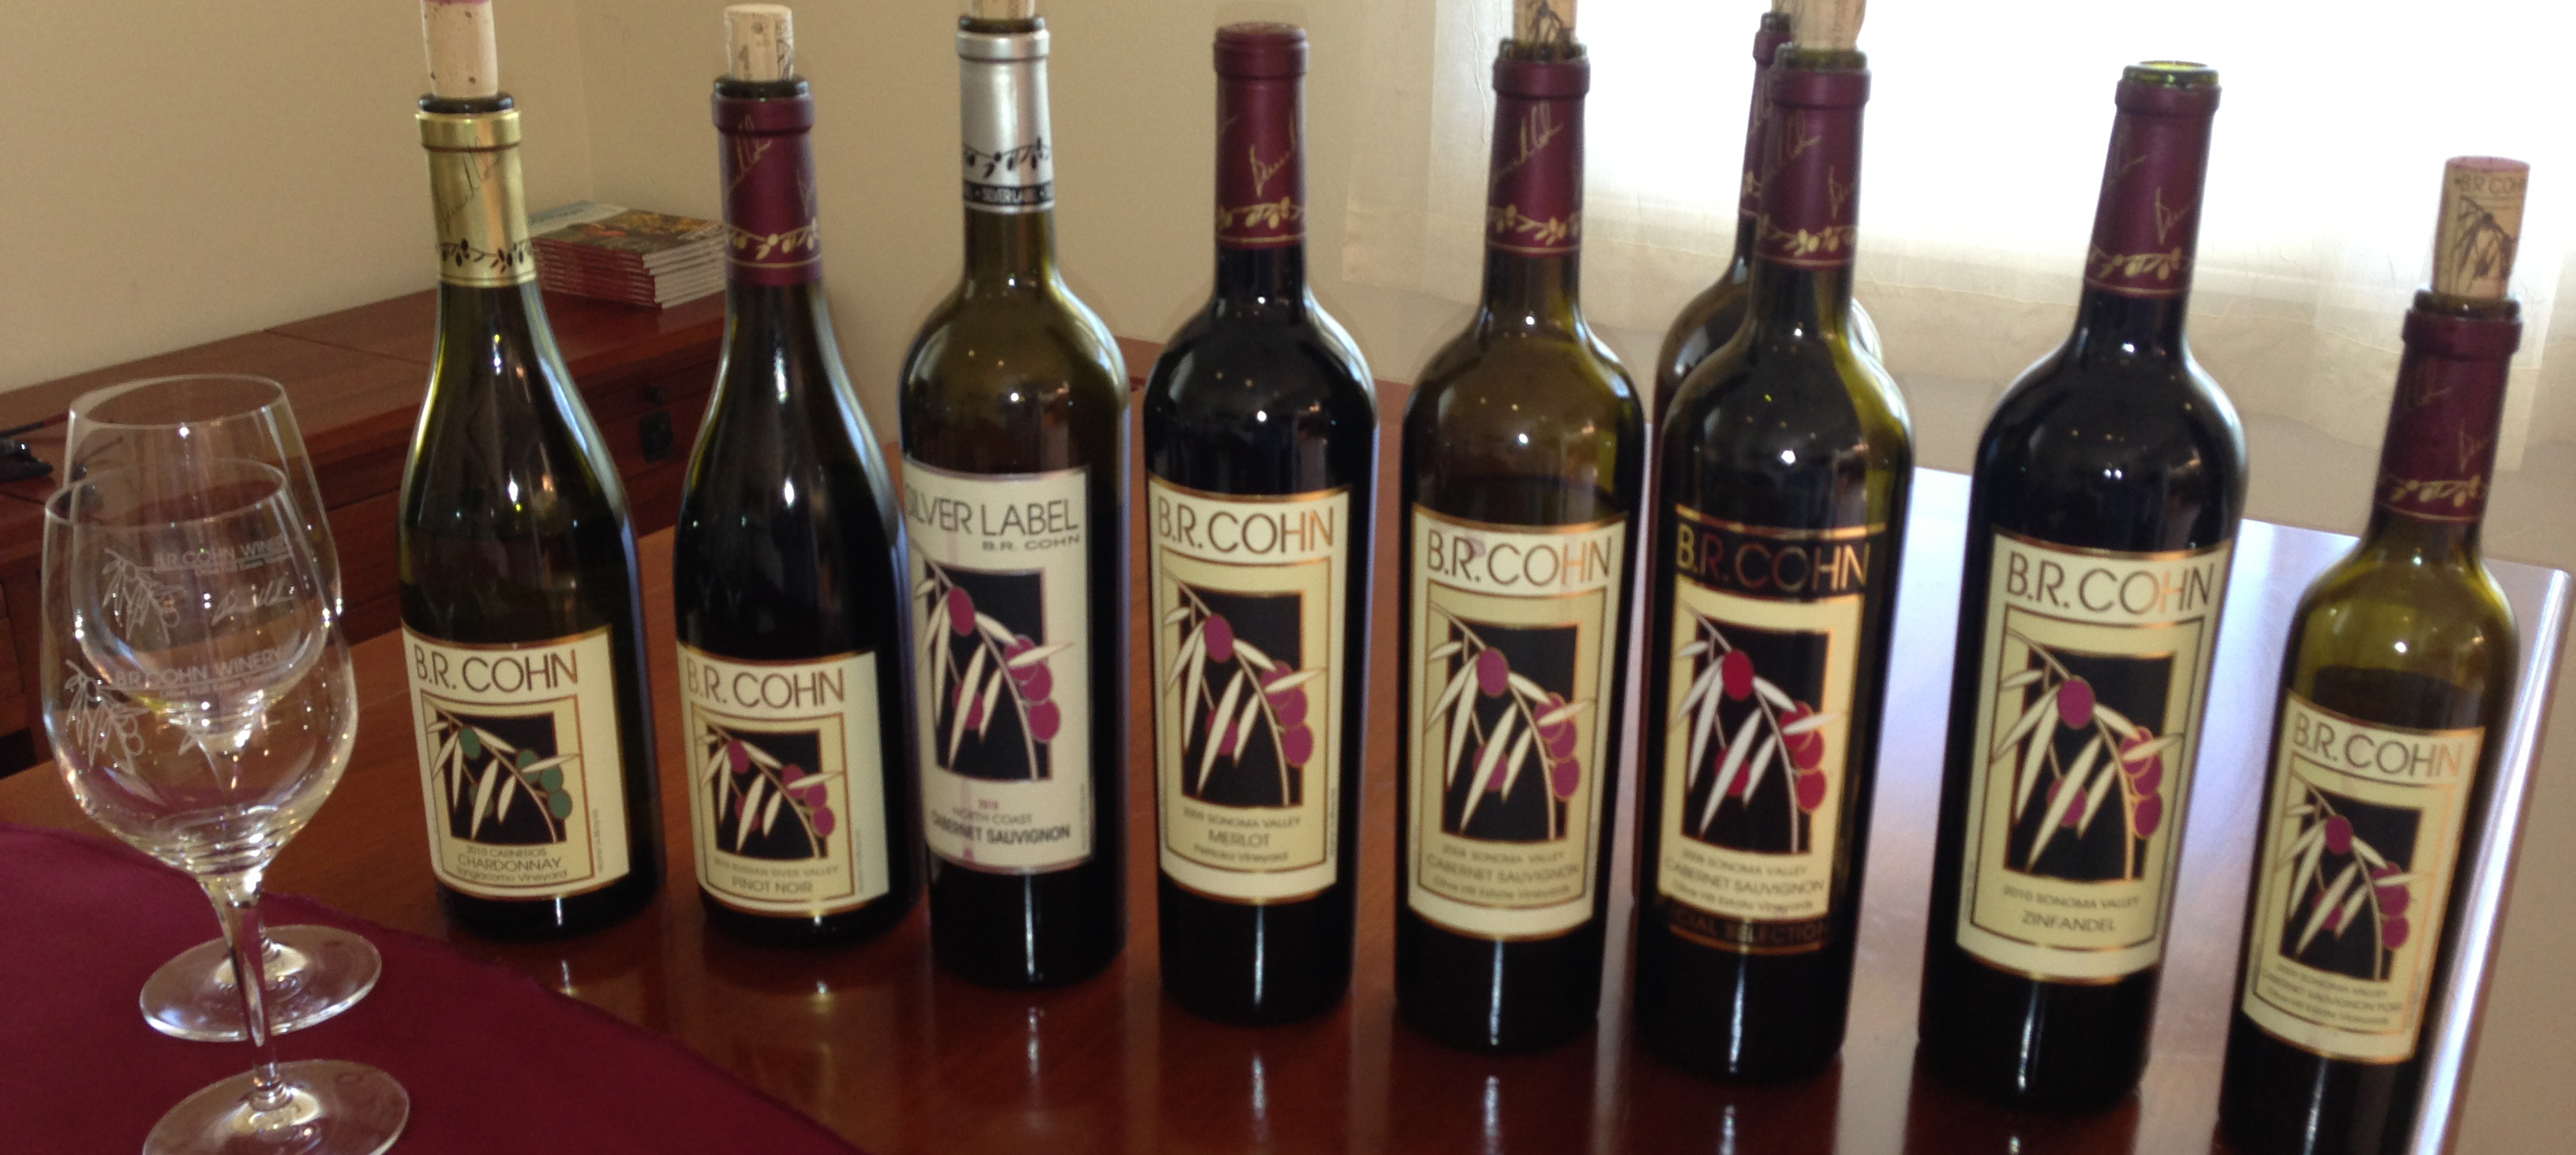 Wines to Sample at BR Cohn Winery